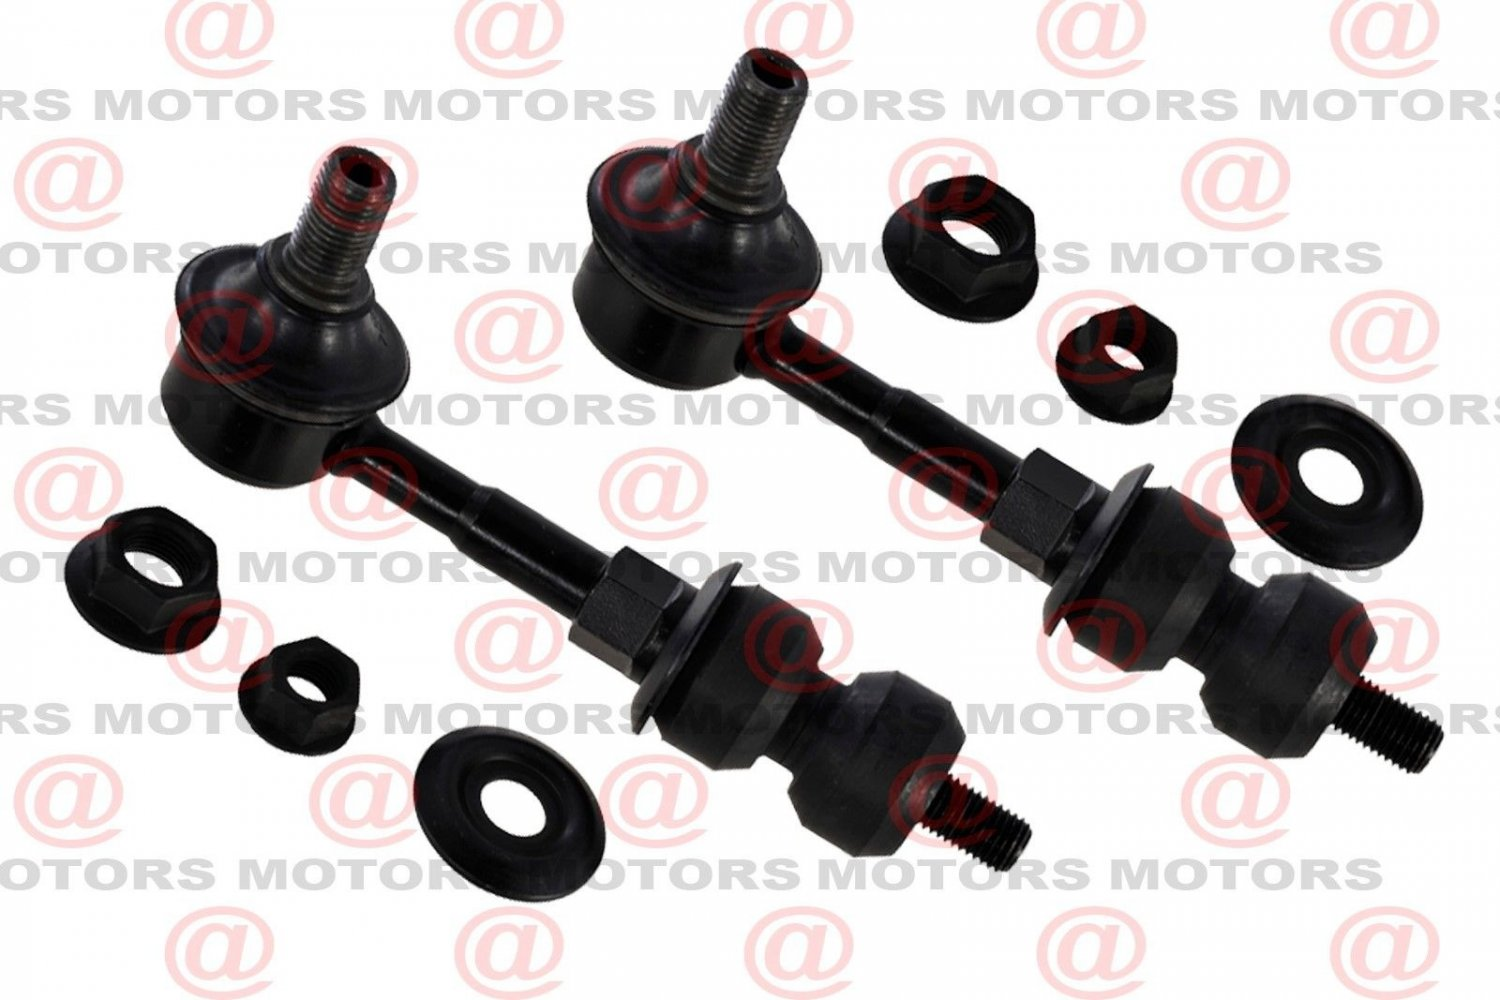 For Toyota RAV4 2006-2016 Rear Left & Right Stabilizer Bar Link 2 Pieces